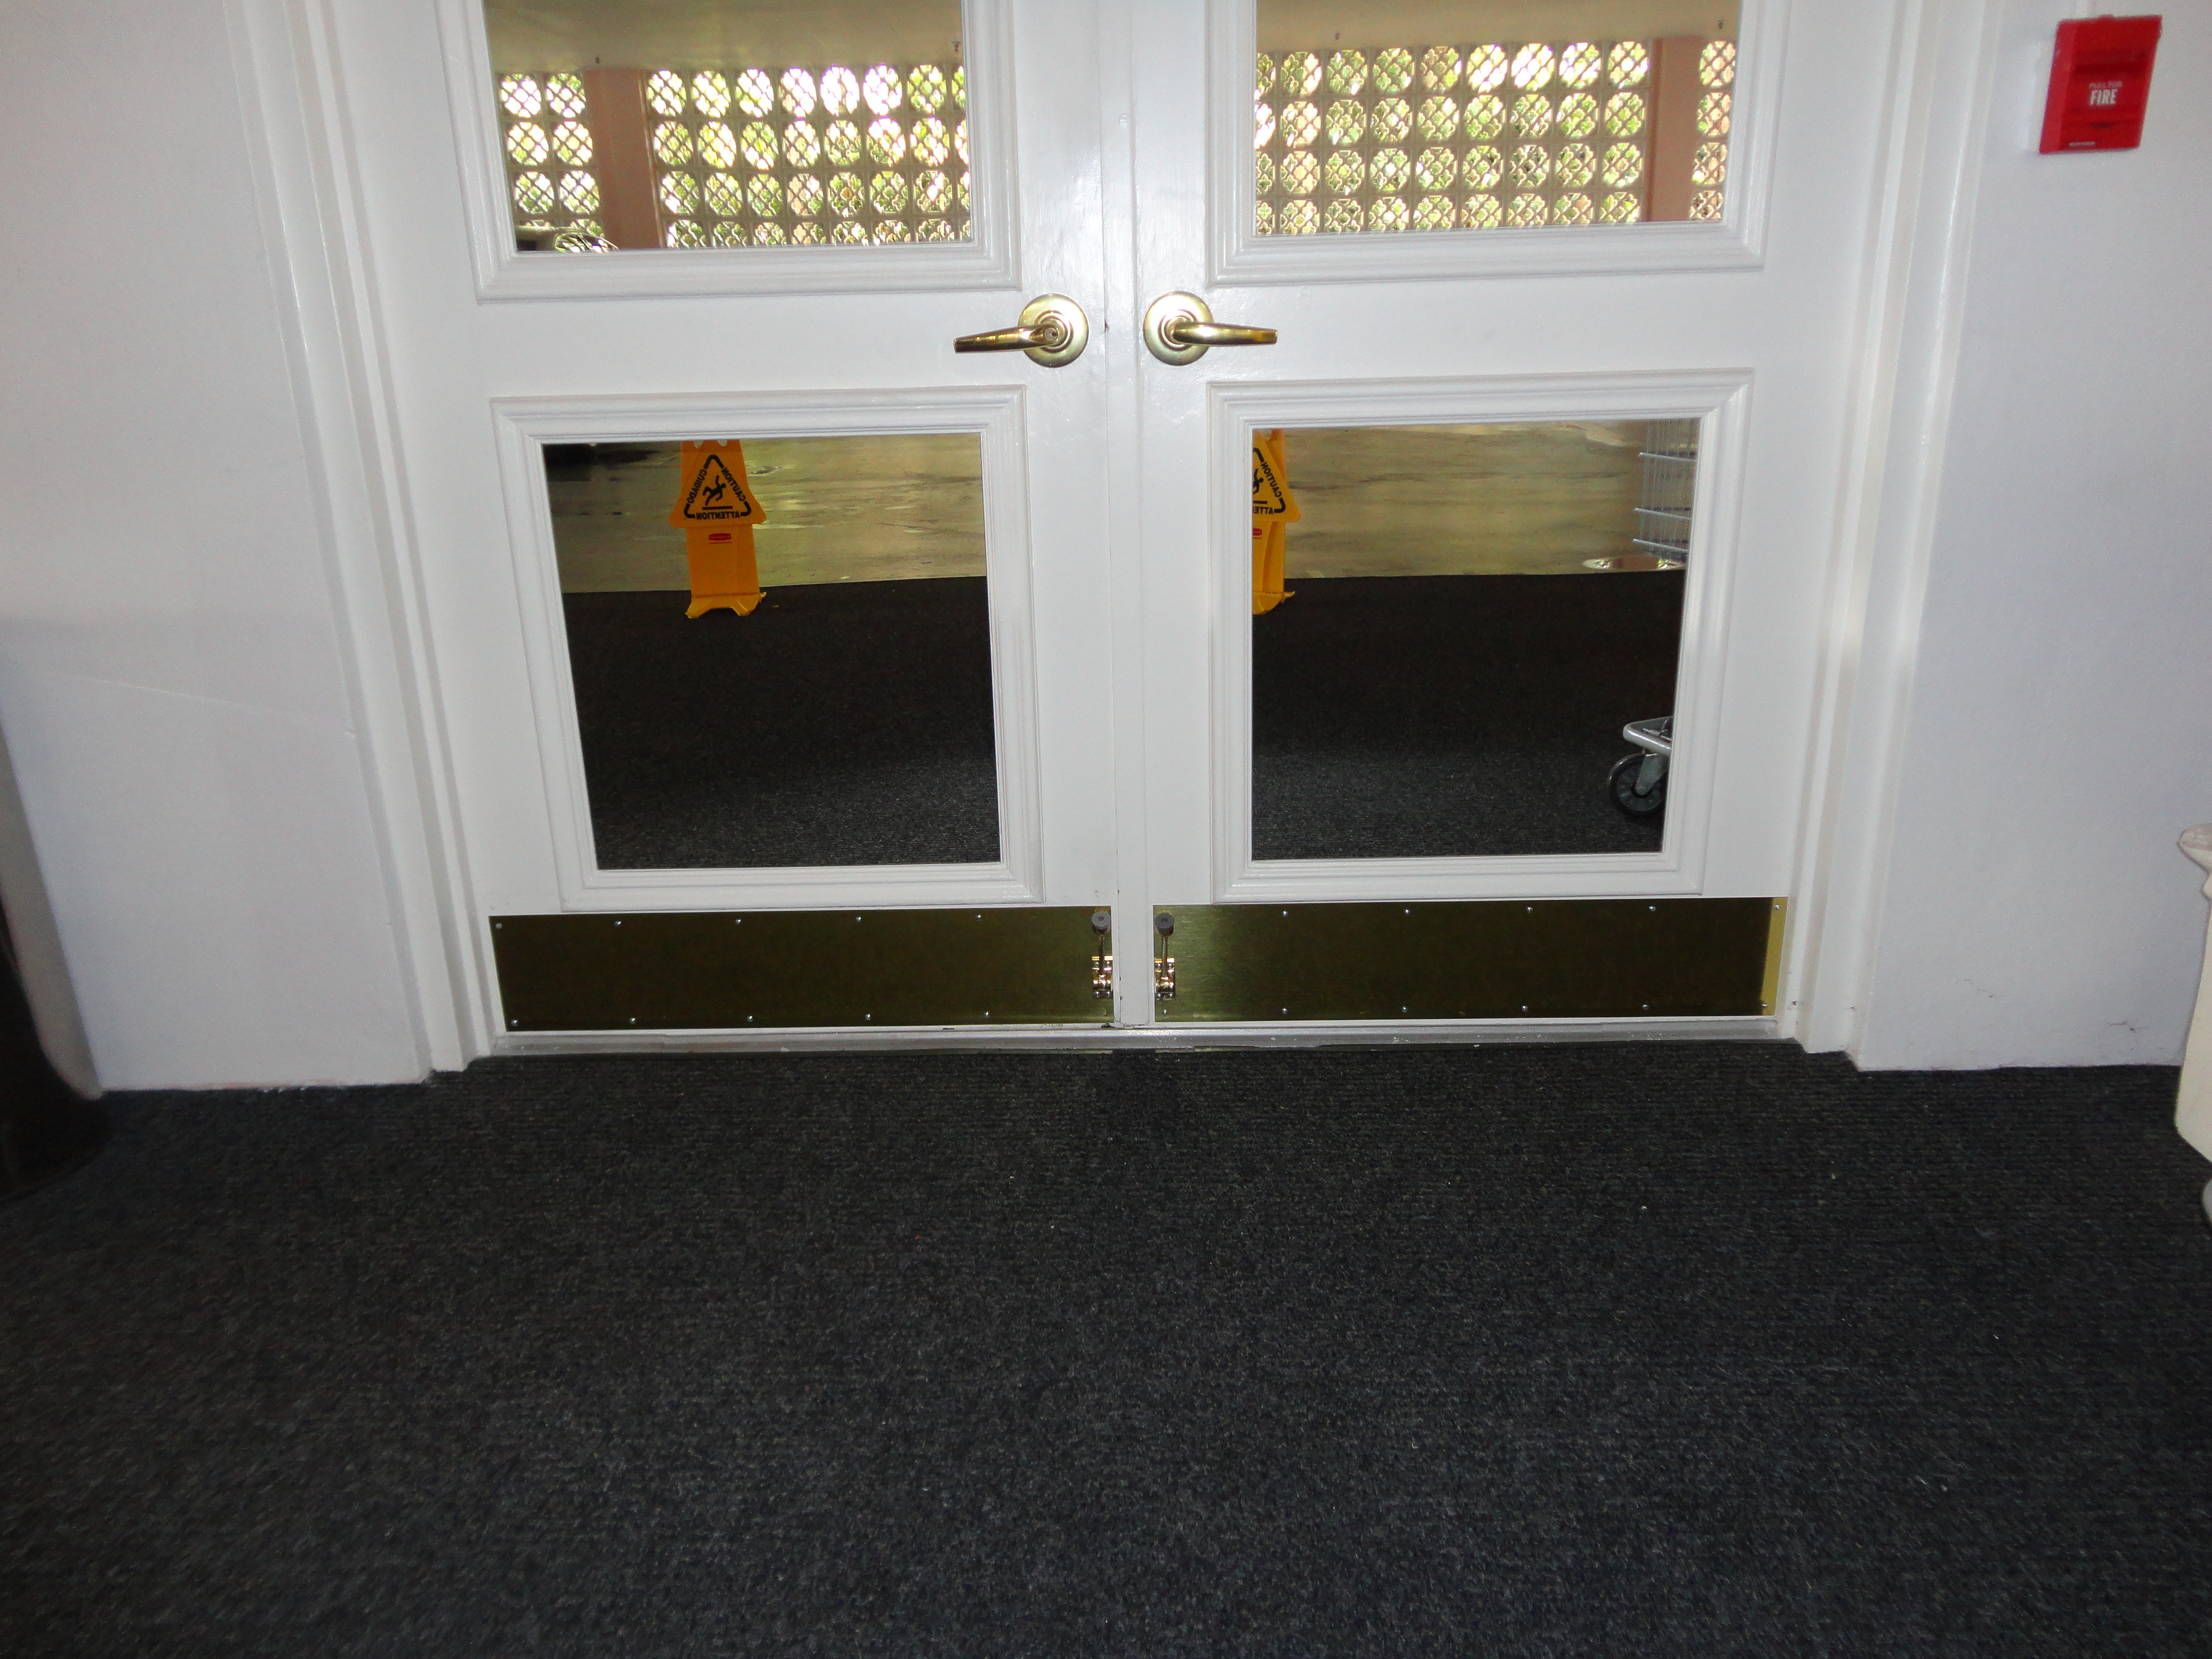 New Brass Kick Plates And Doorstops For The Entrance